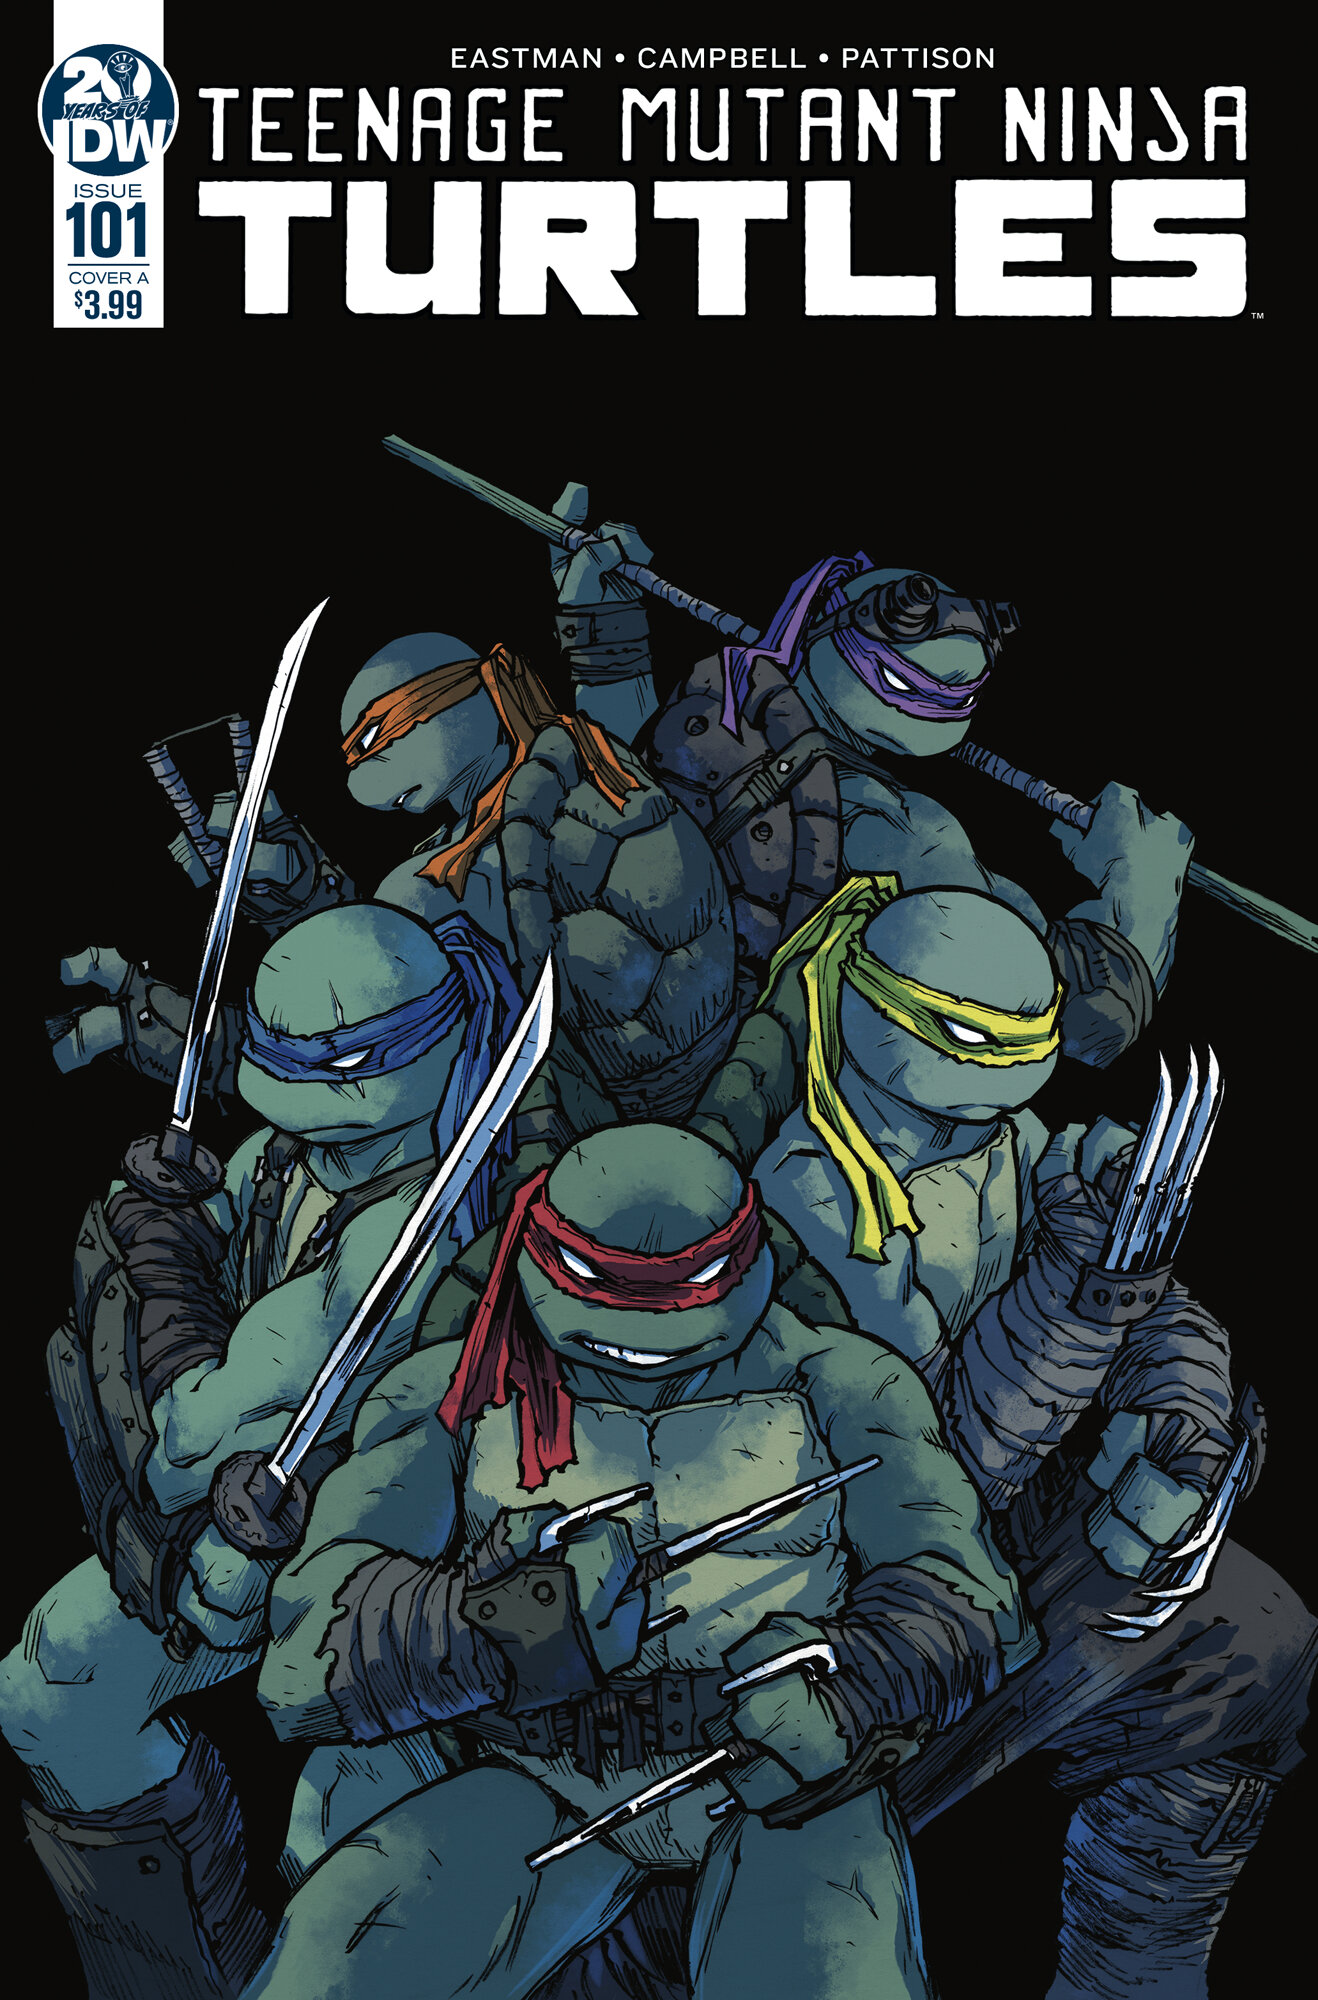 Teenage+Mutant+Ninja+Turtles+%23101.jpg